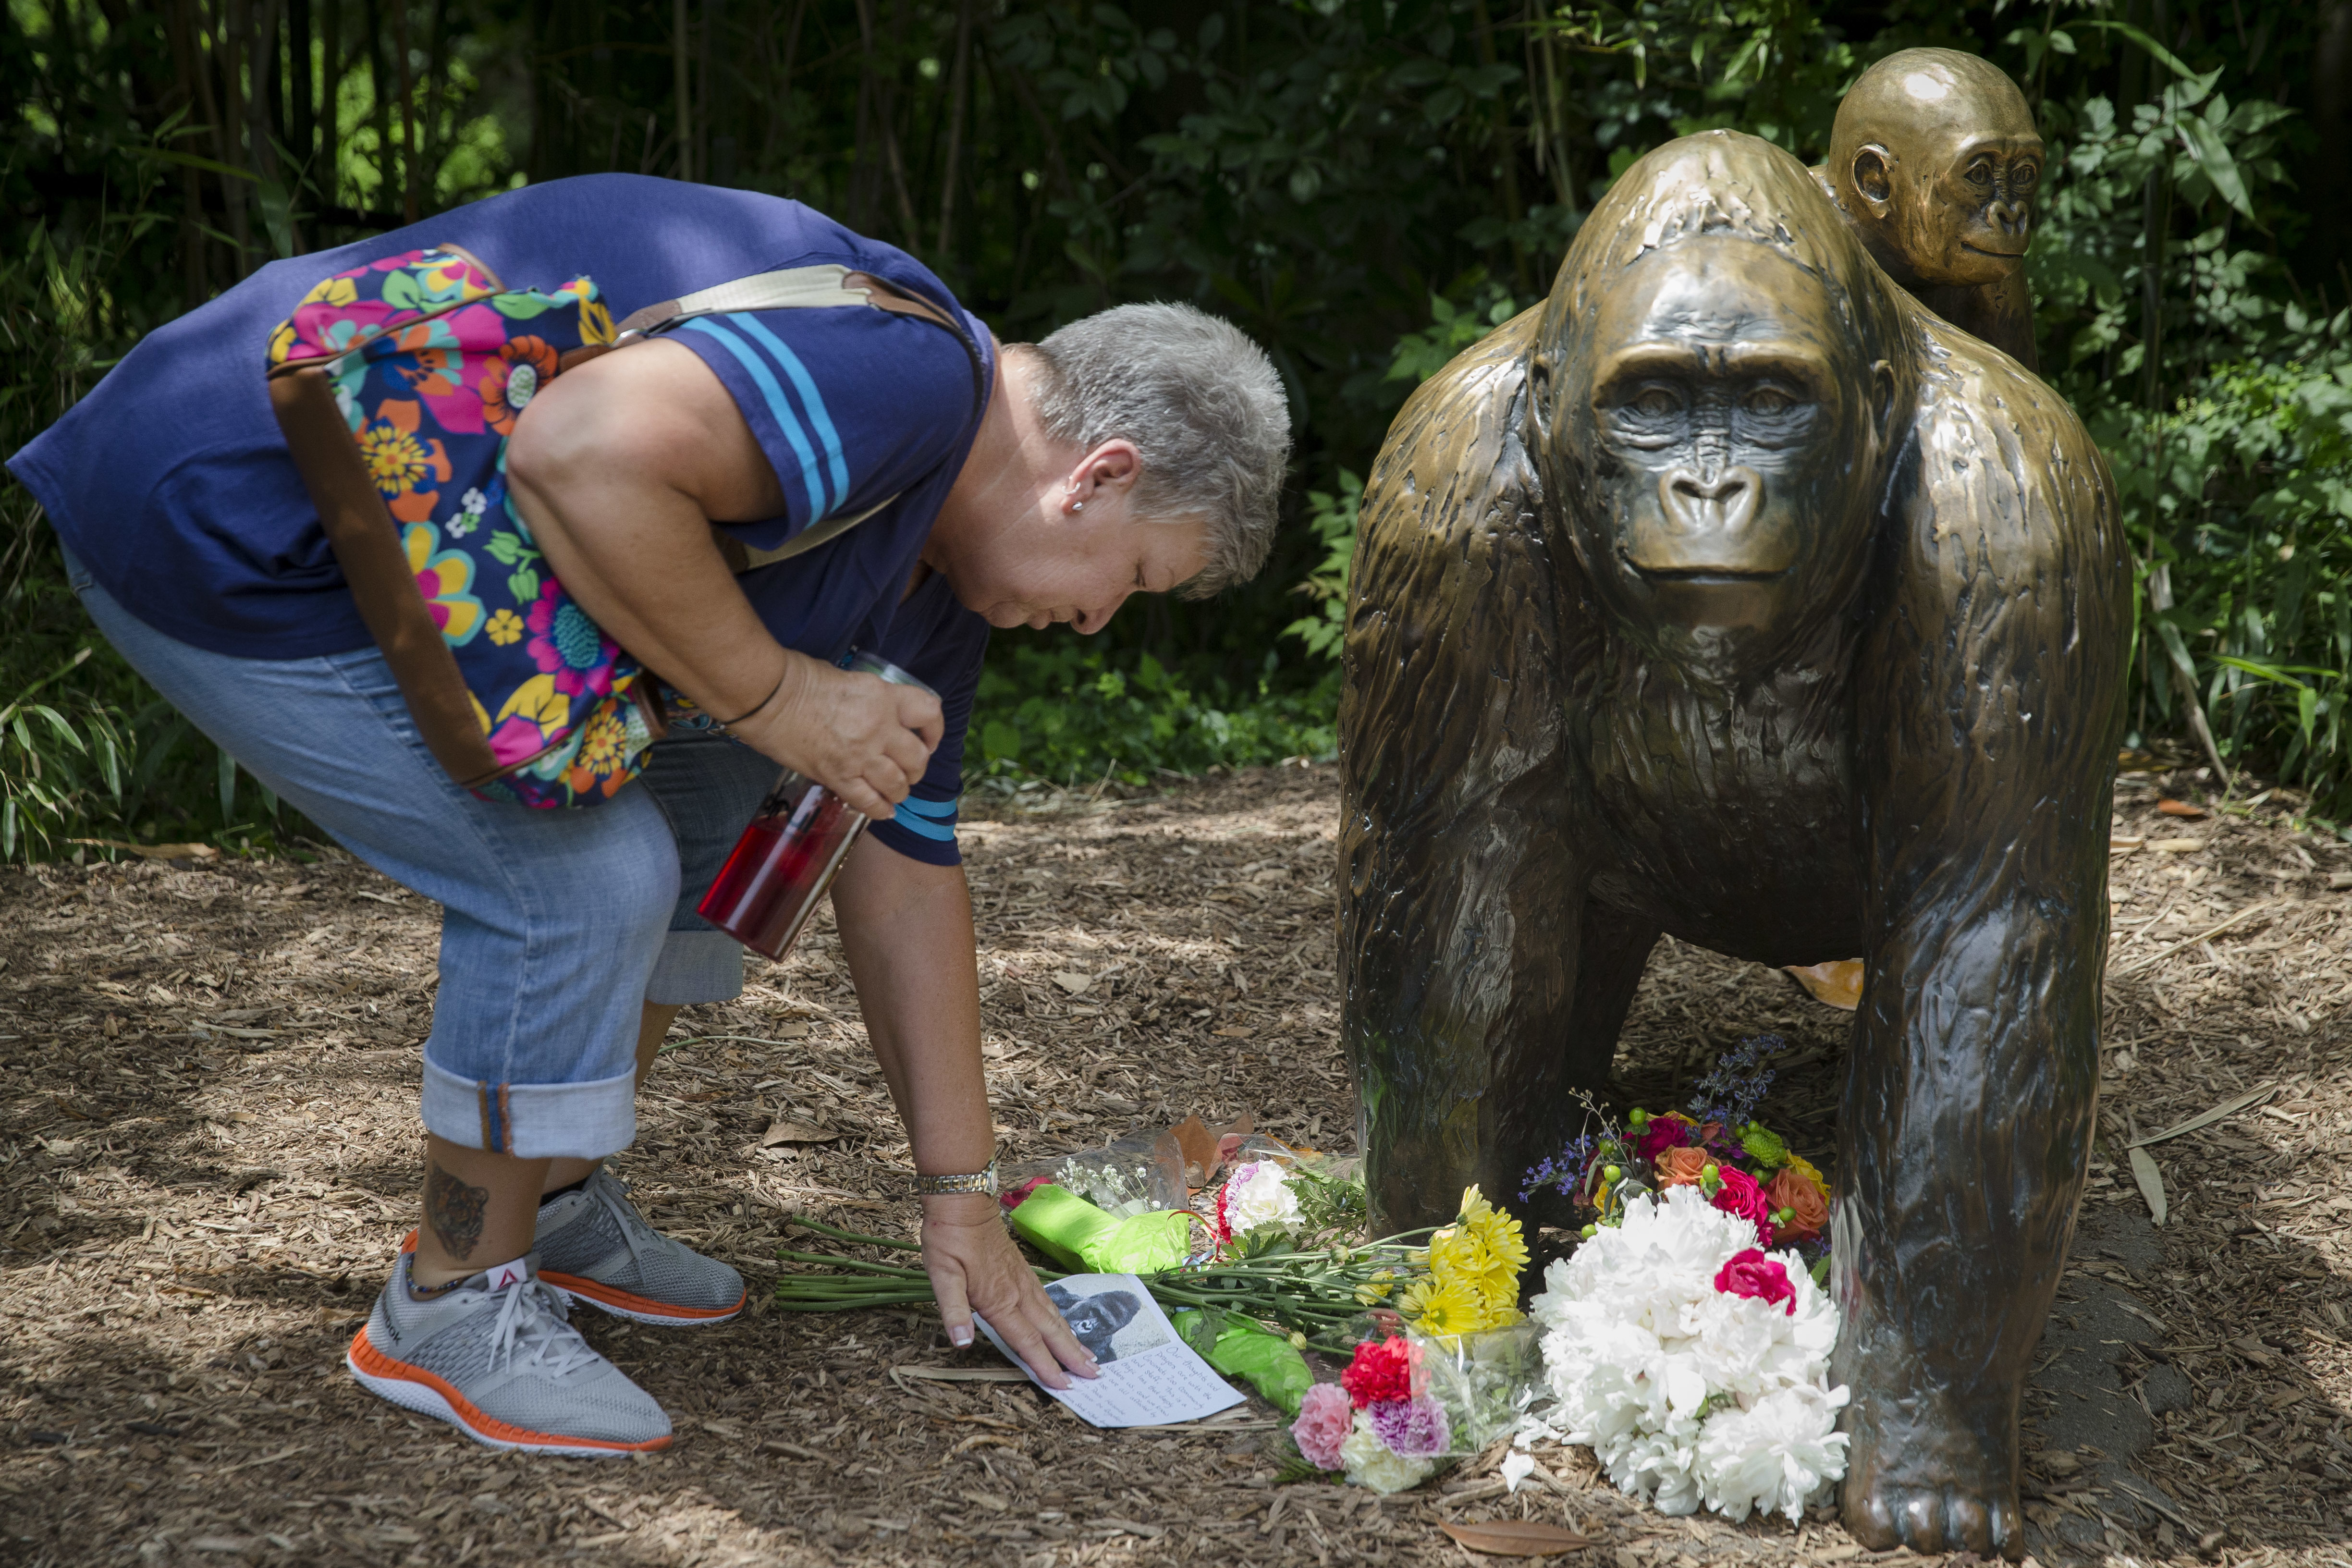 Texas Zookeeper Who Raised the Killed Gorilla Mourns His Death